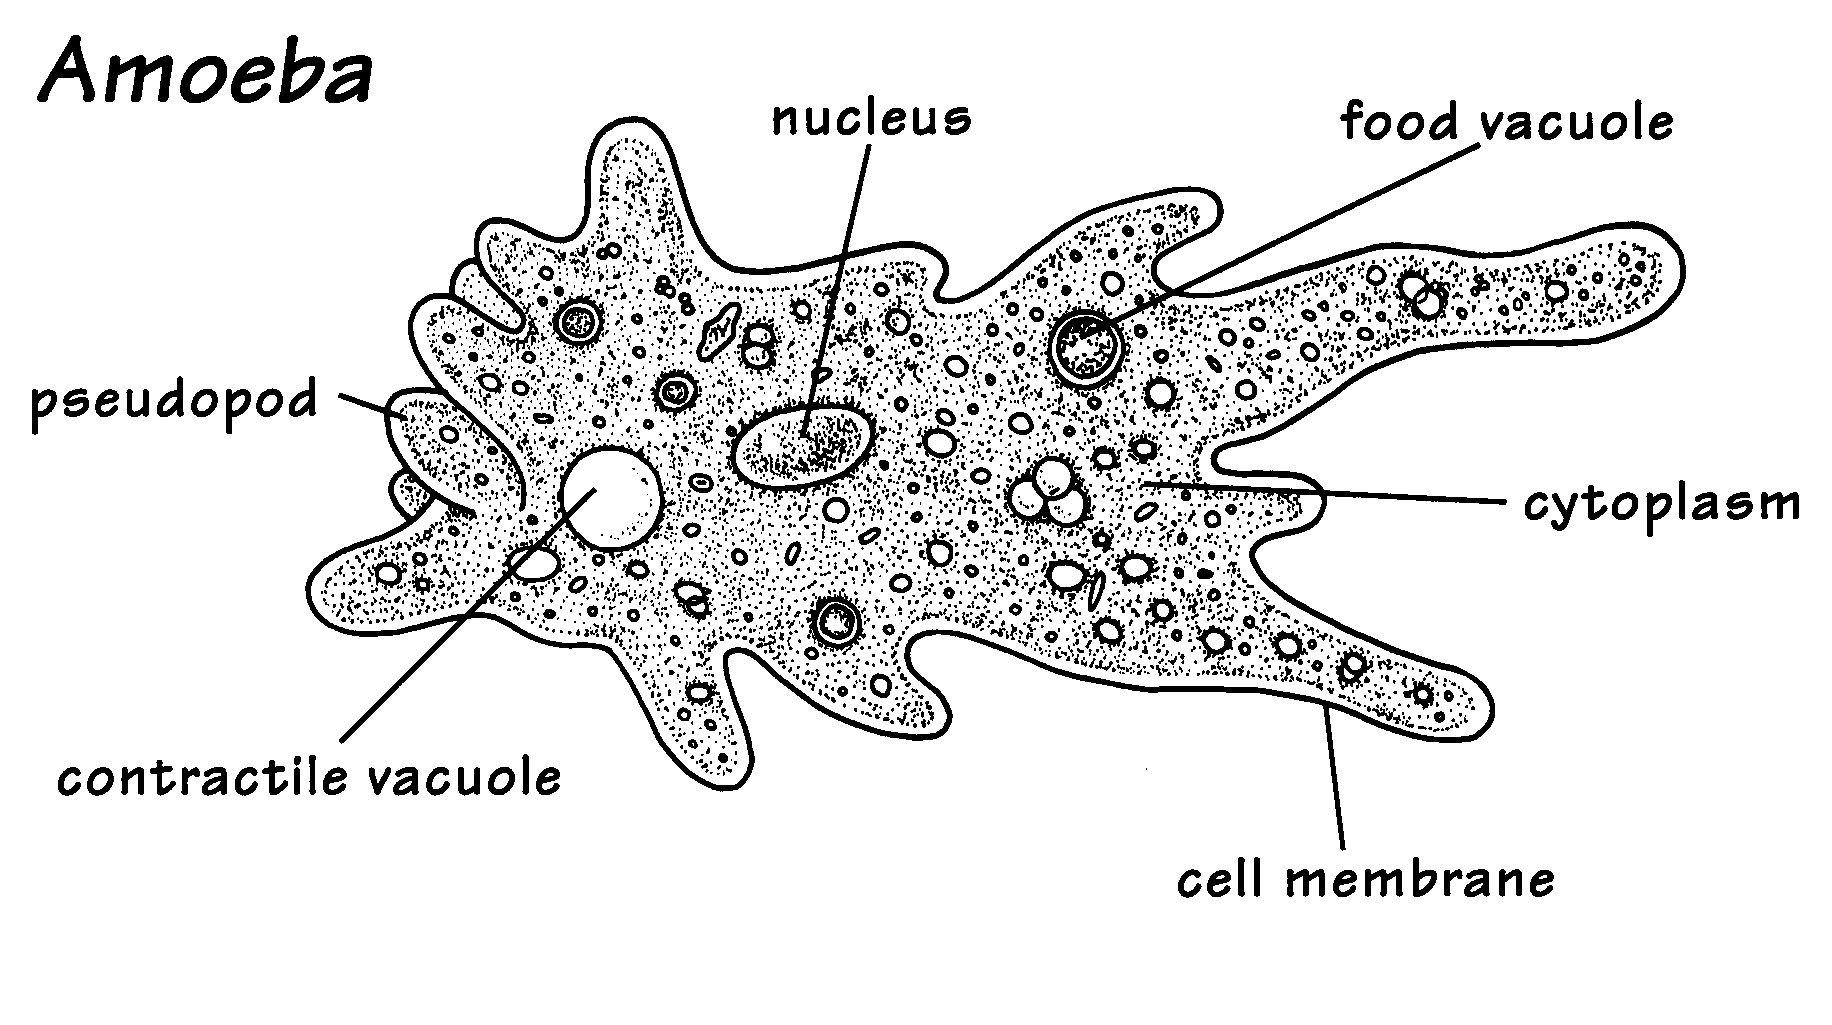 This Is A Picture Of An Amoeba An Amoeba Is A Unicellular